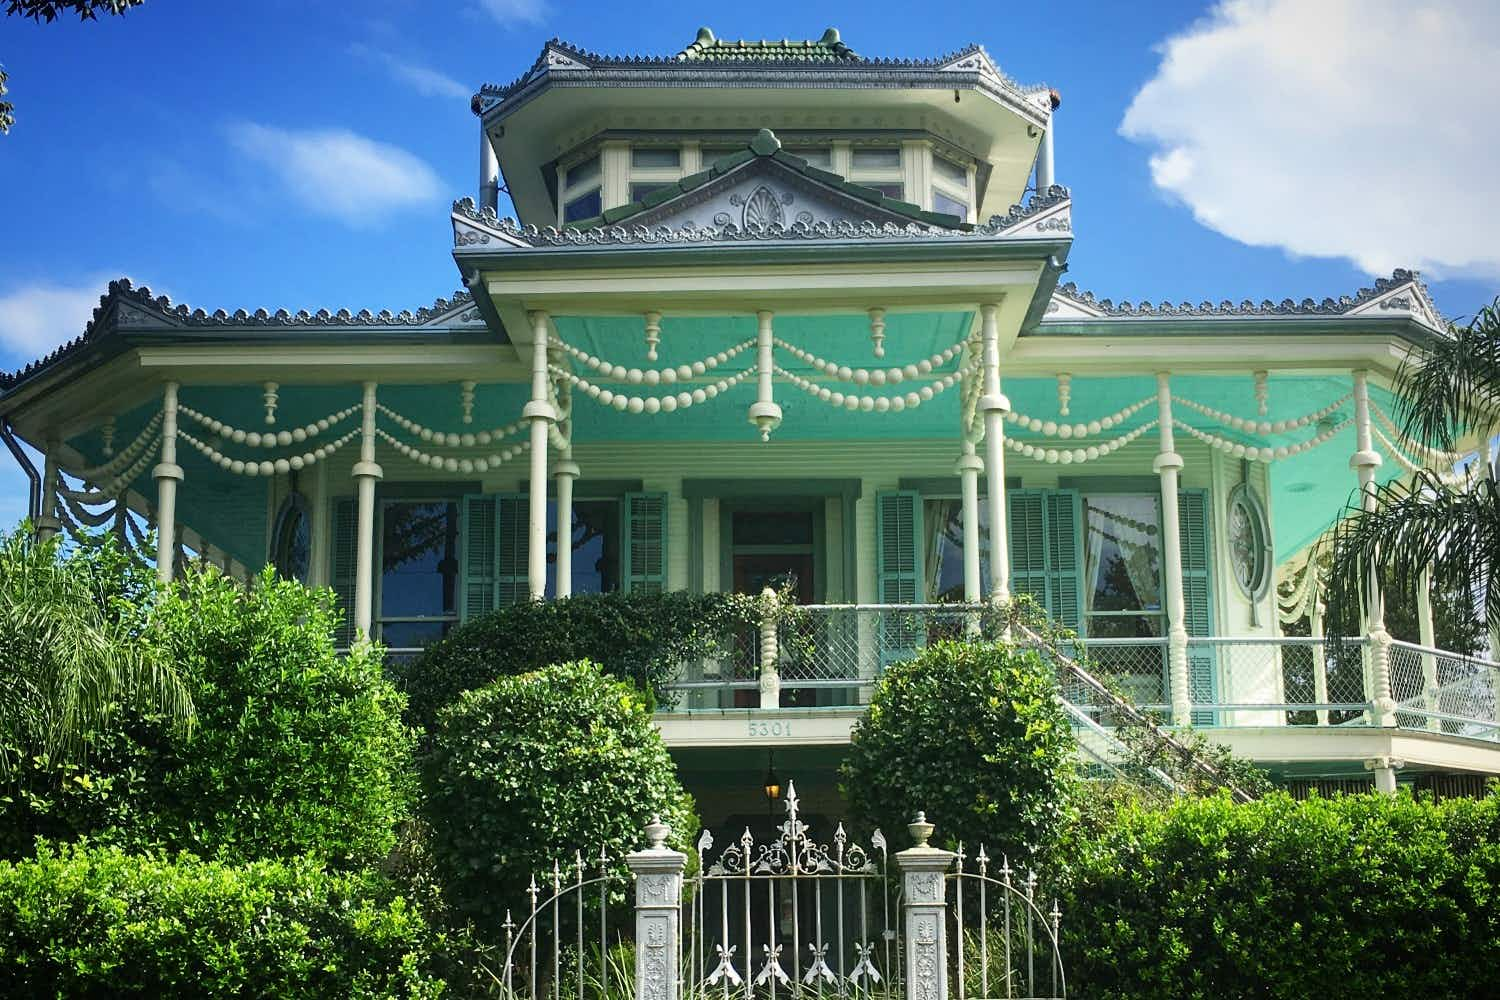 Enjoy the history and architectural treasures of New Orleans via this Instagram account